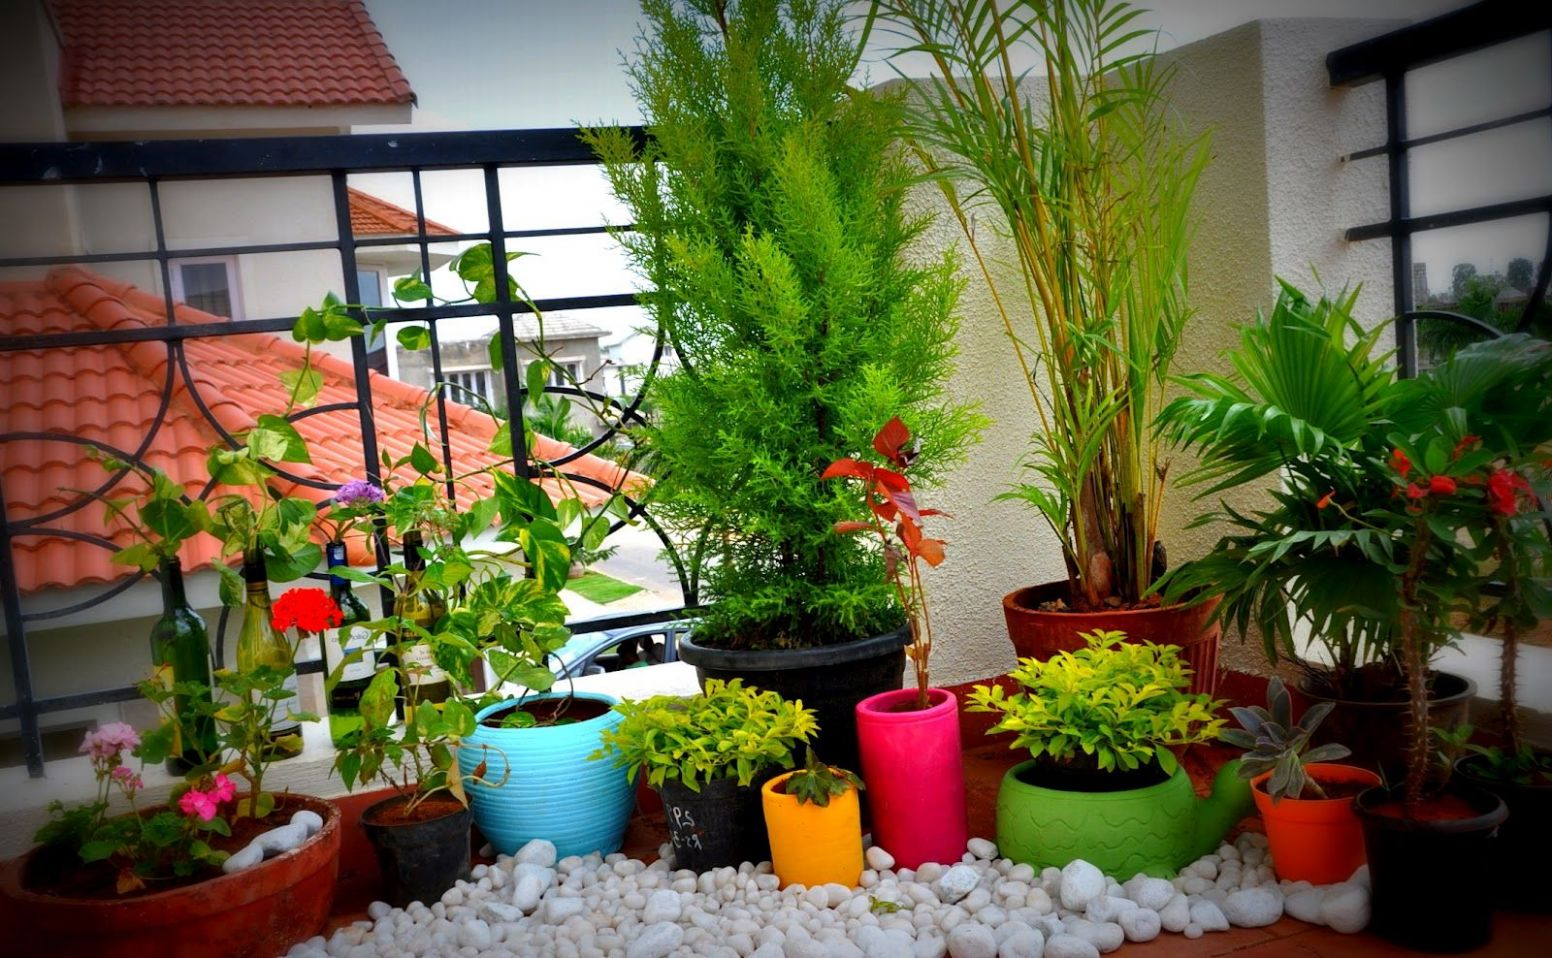 creative balcony designs - Hunkie - balcony beautification ideas